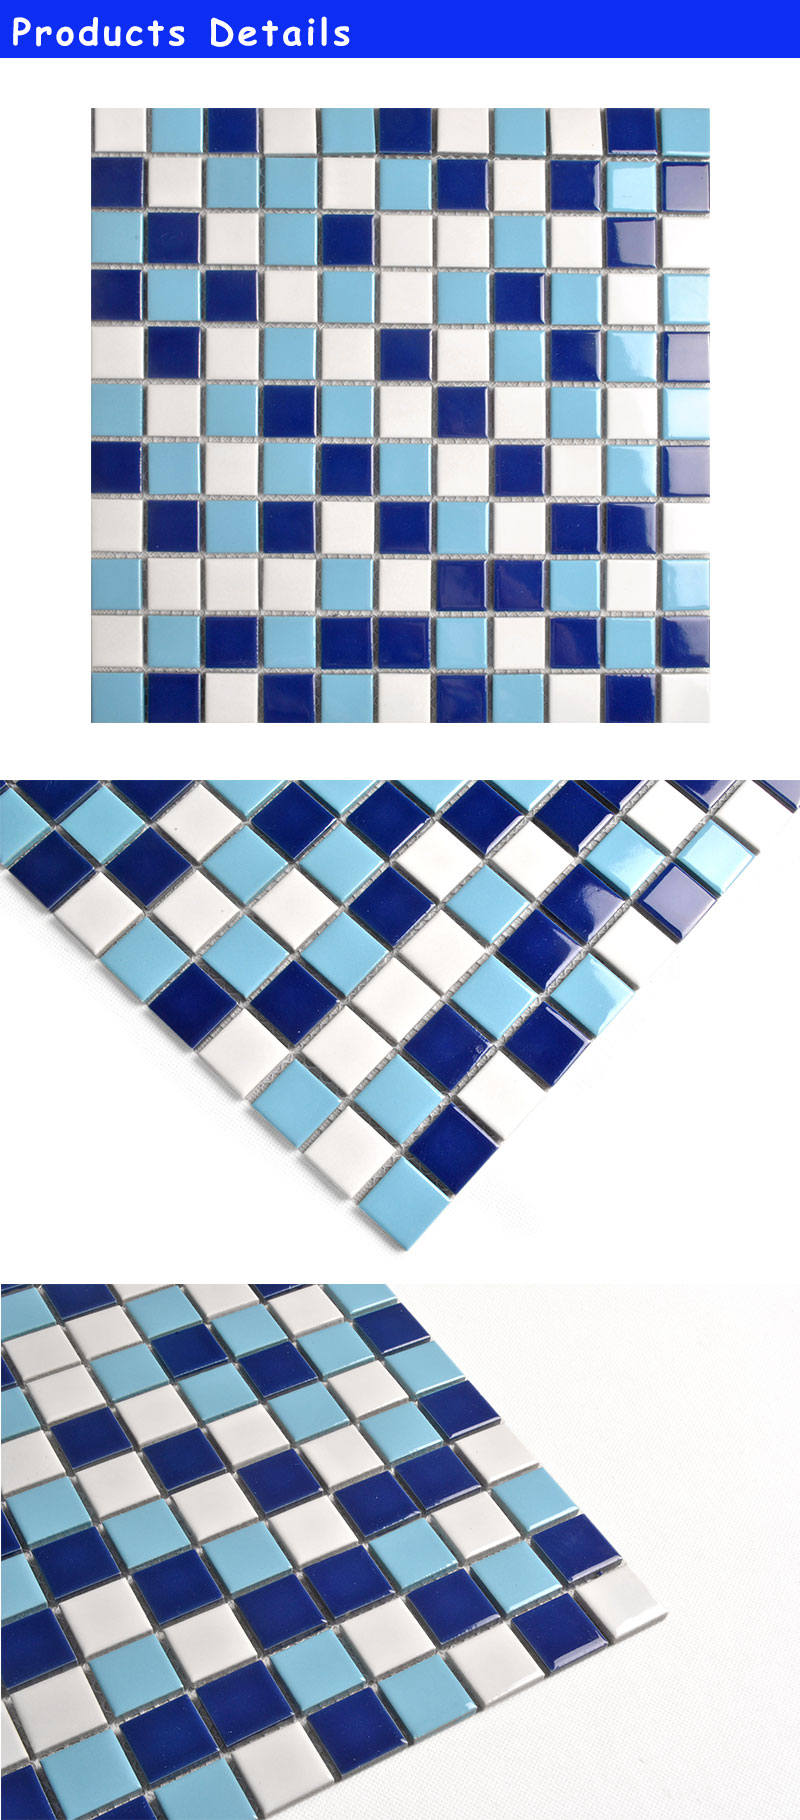 25X25 wholesale blue ceramic tile japan swimming pool tile